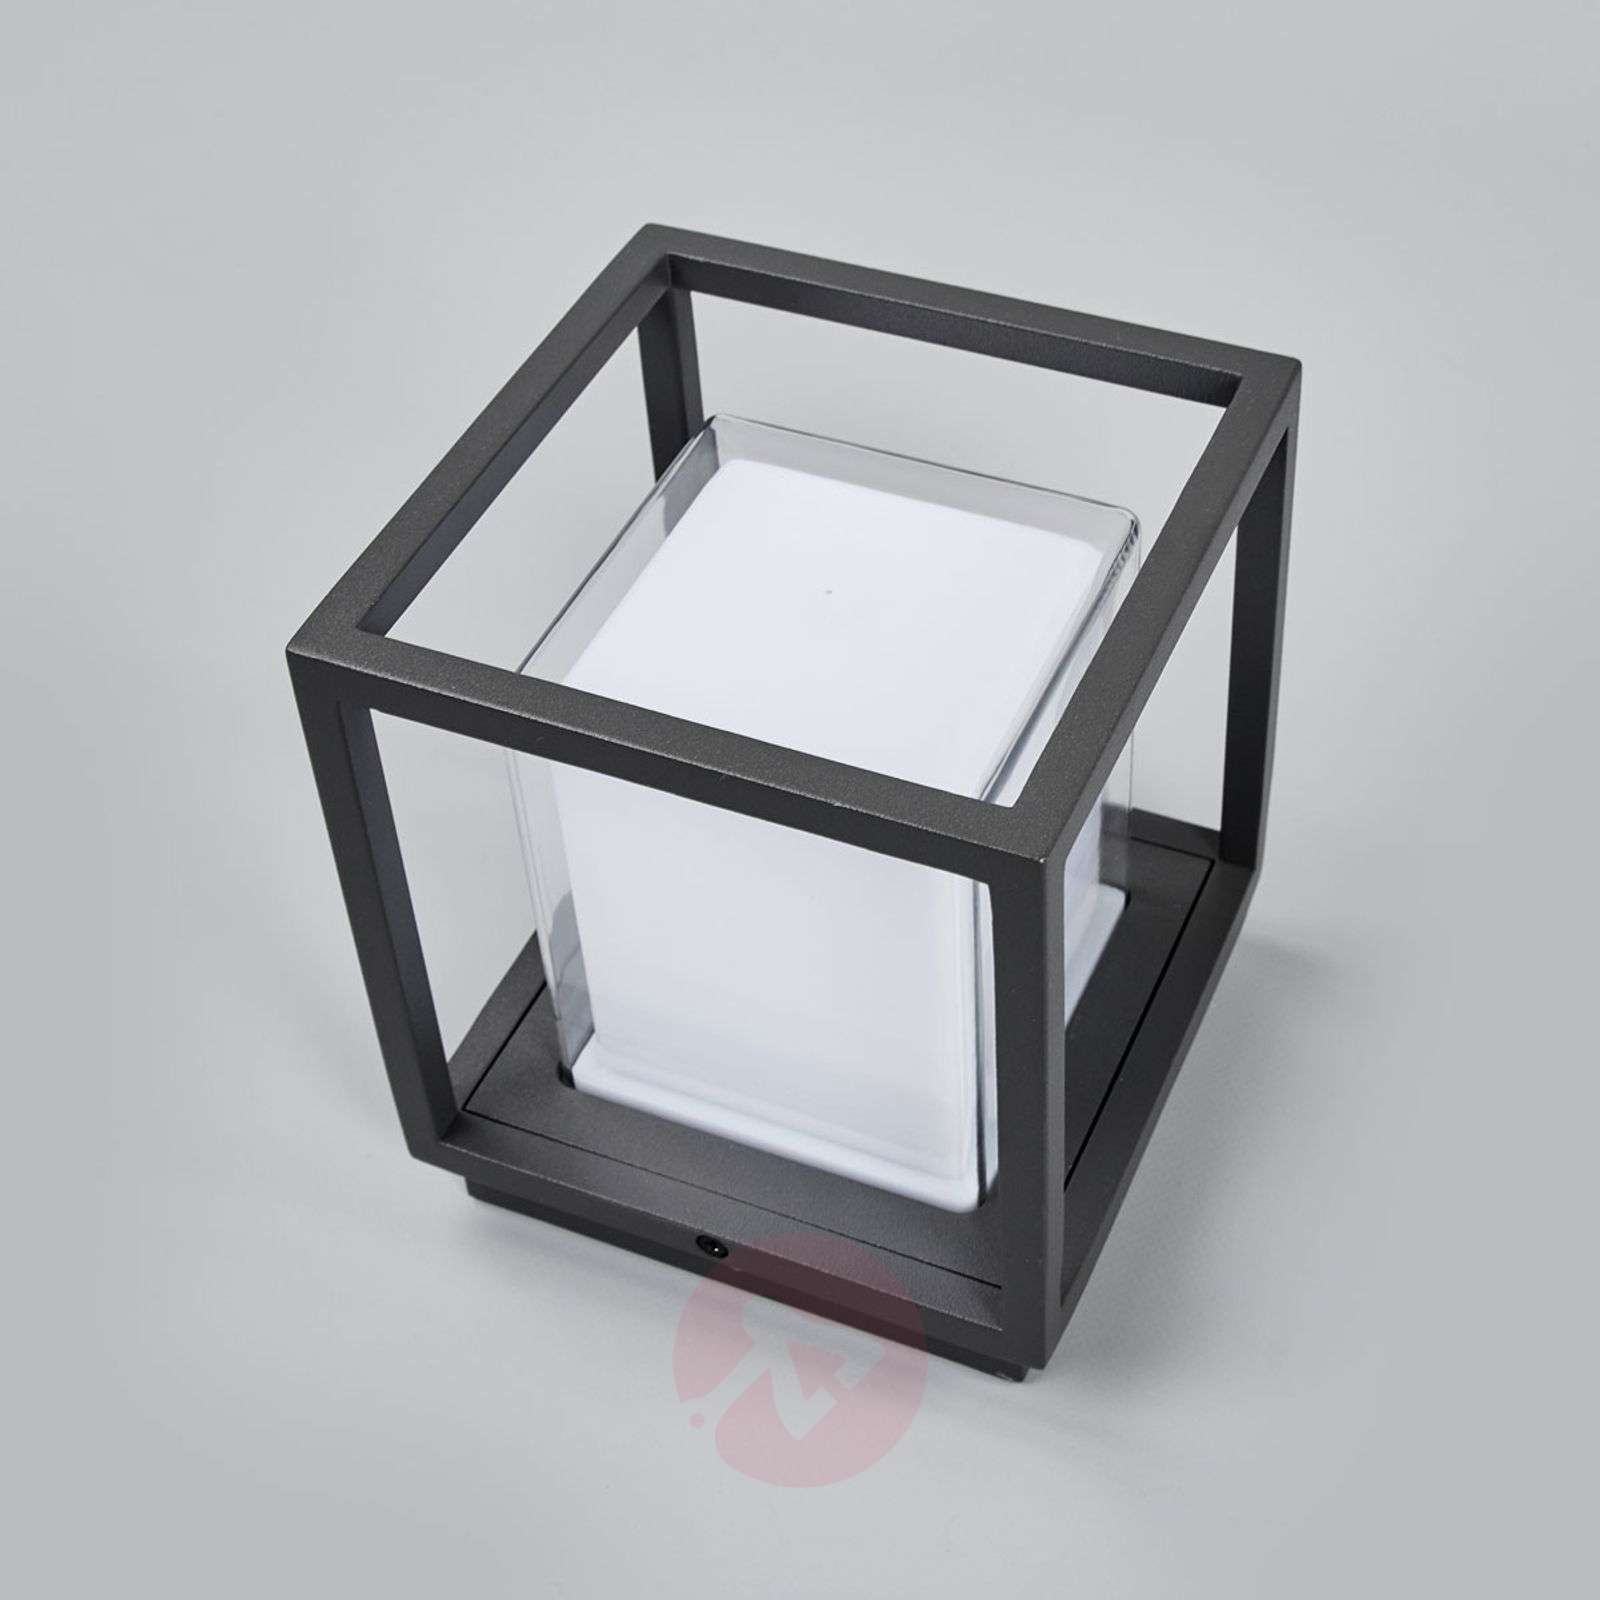 Cube-shaped LED outdoor wall lamp Laurens-9647082-01